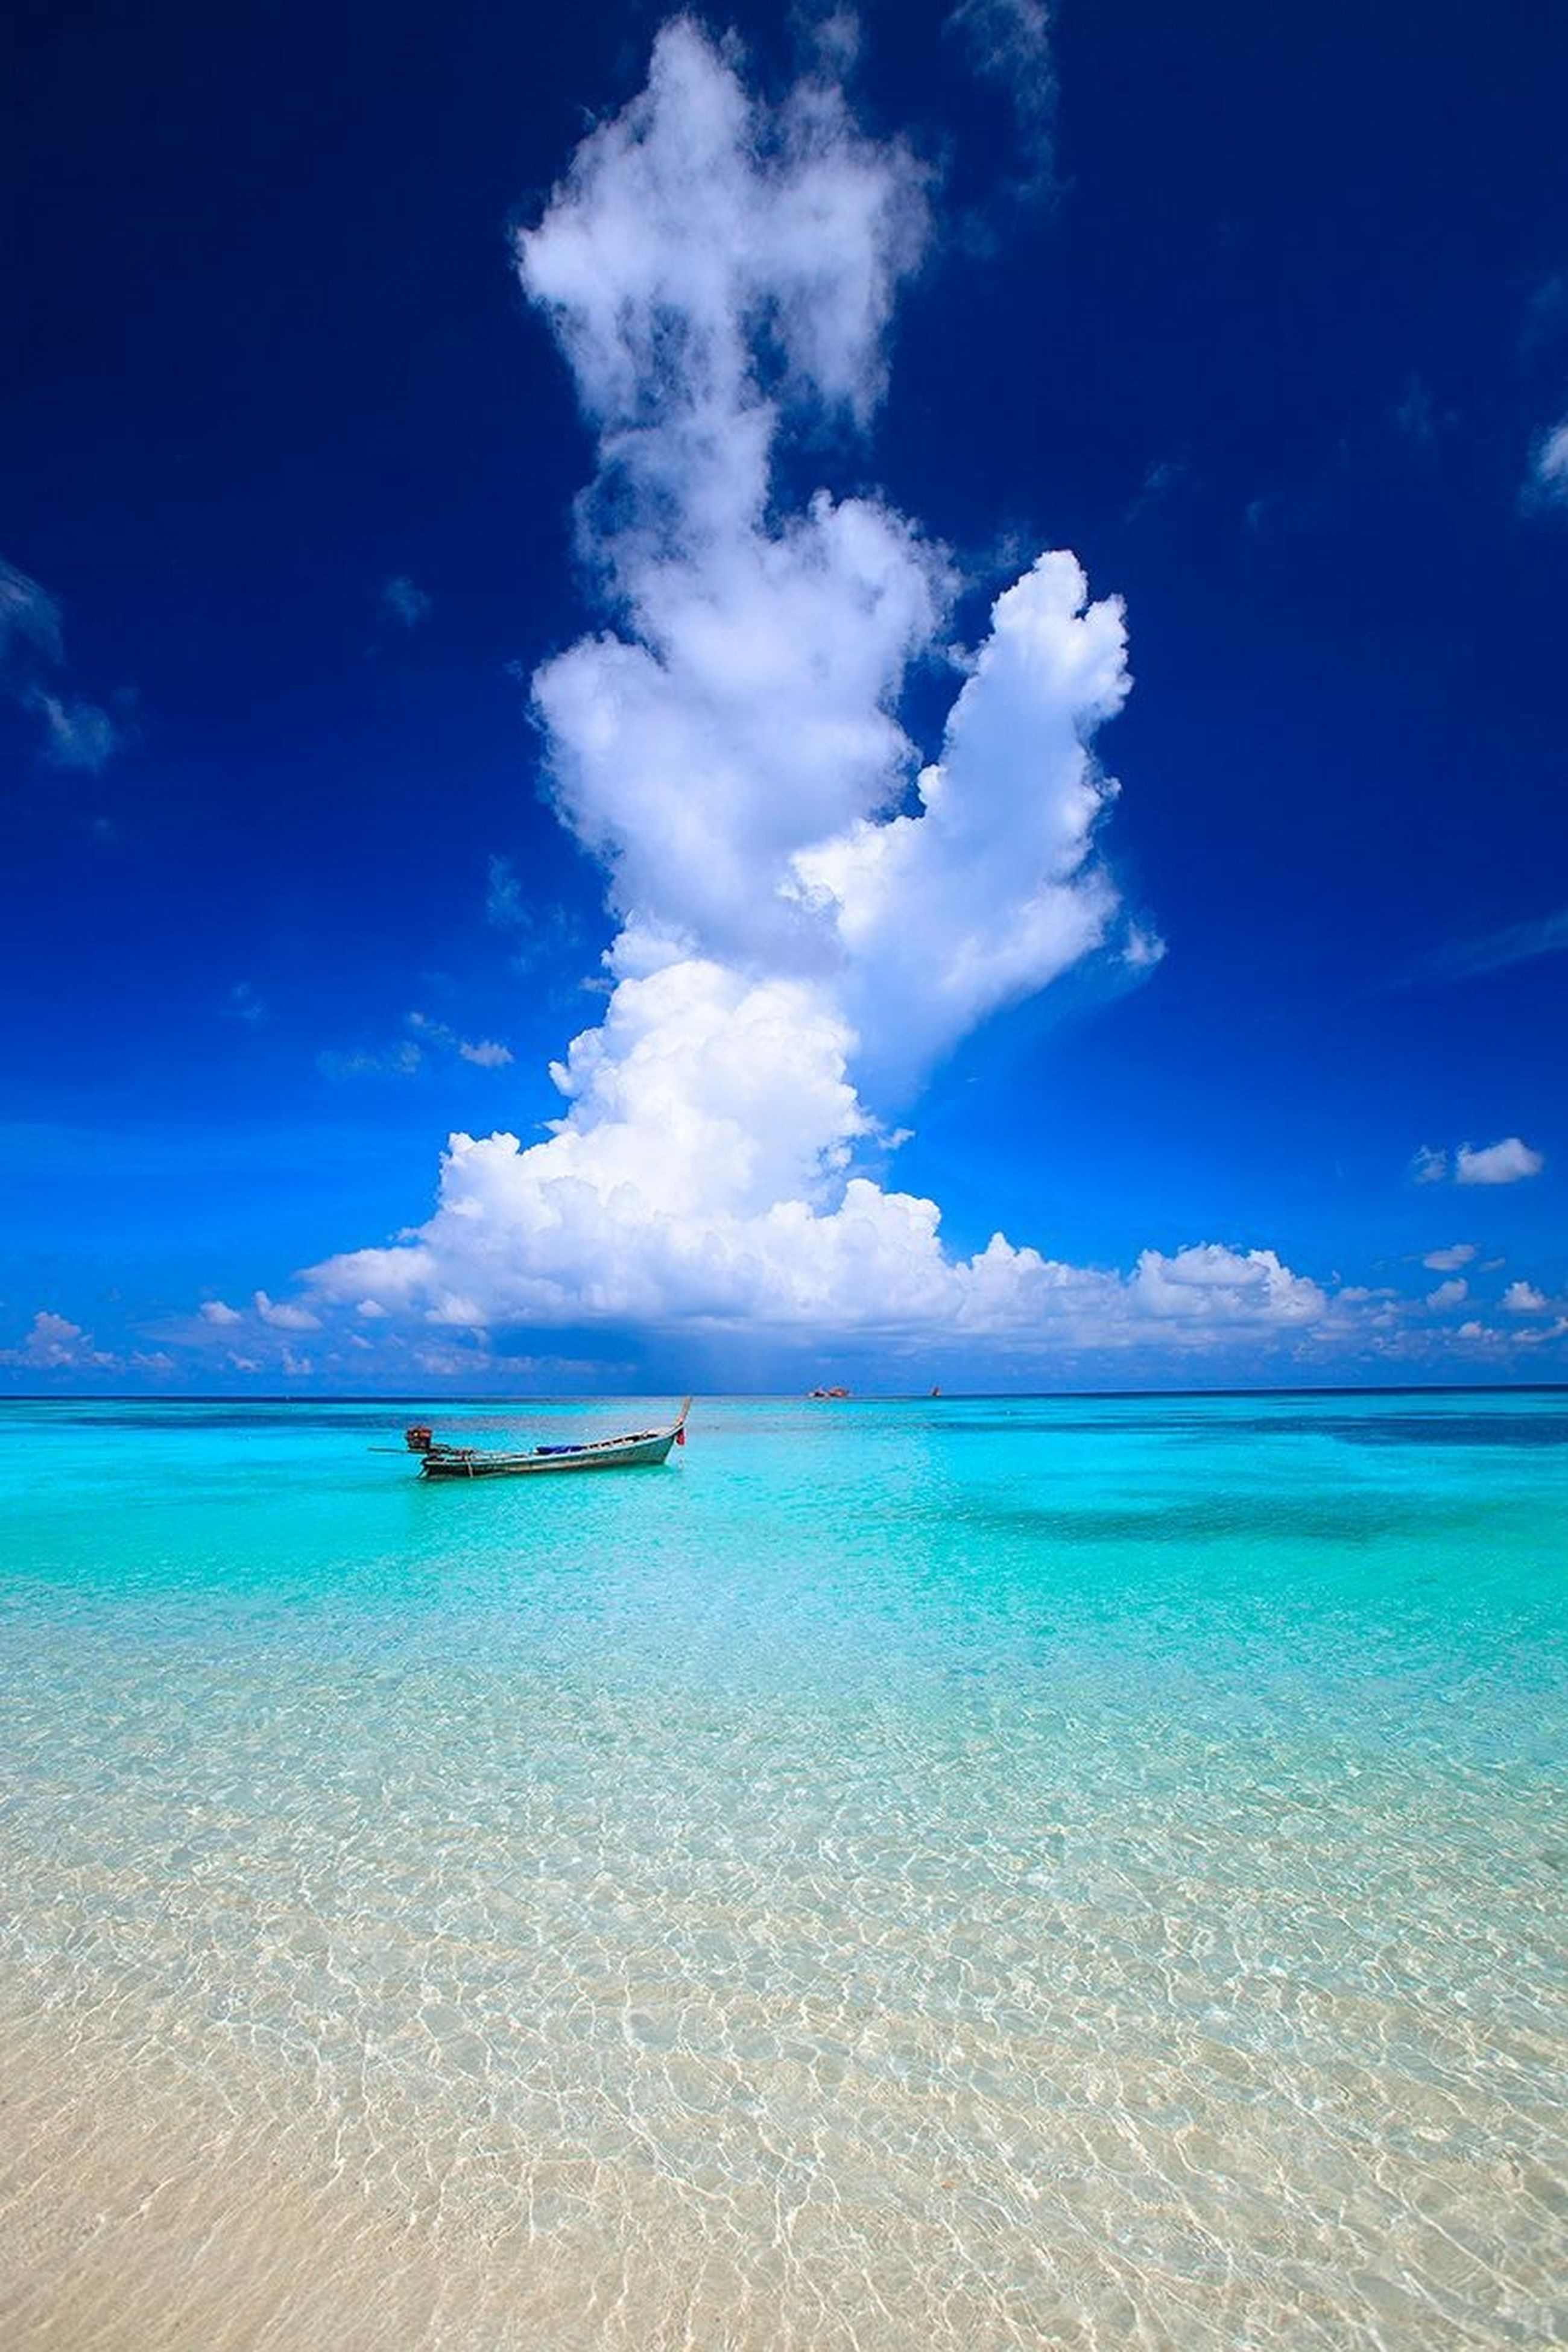 sea, water, blue, horizon over water, beach, tranquil scene, sky, tranquility, scenics, beauty in nature, shore, sand, nature, cloud, idyllic, cloud - sky, seascape, calm, coastline, vacations